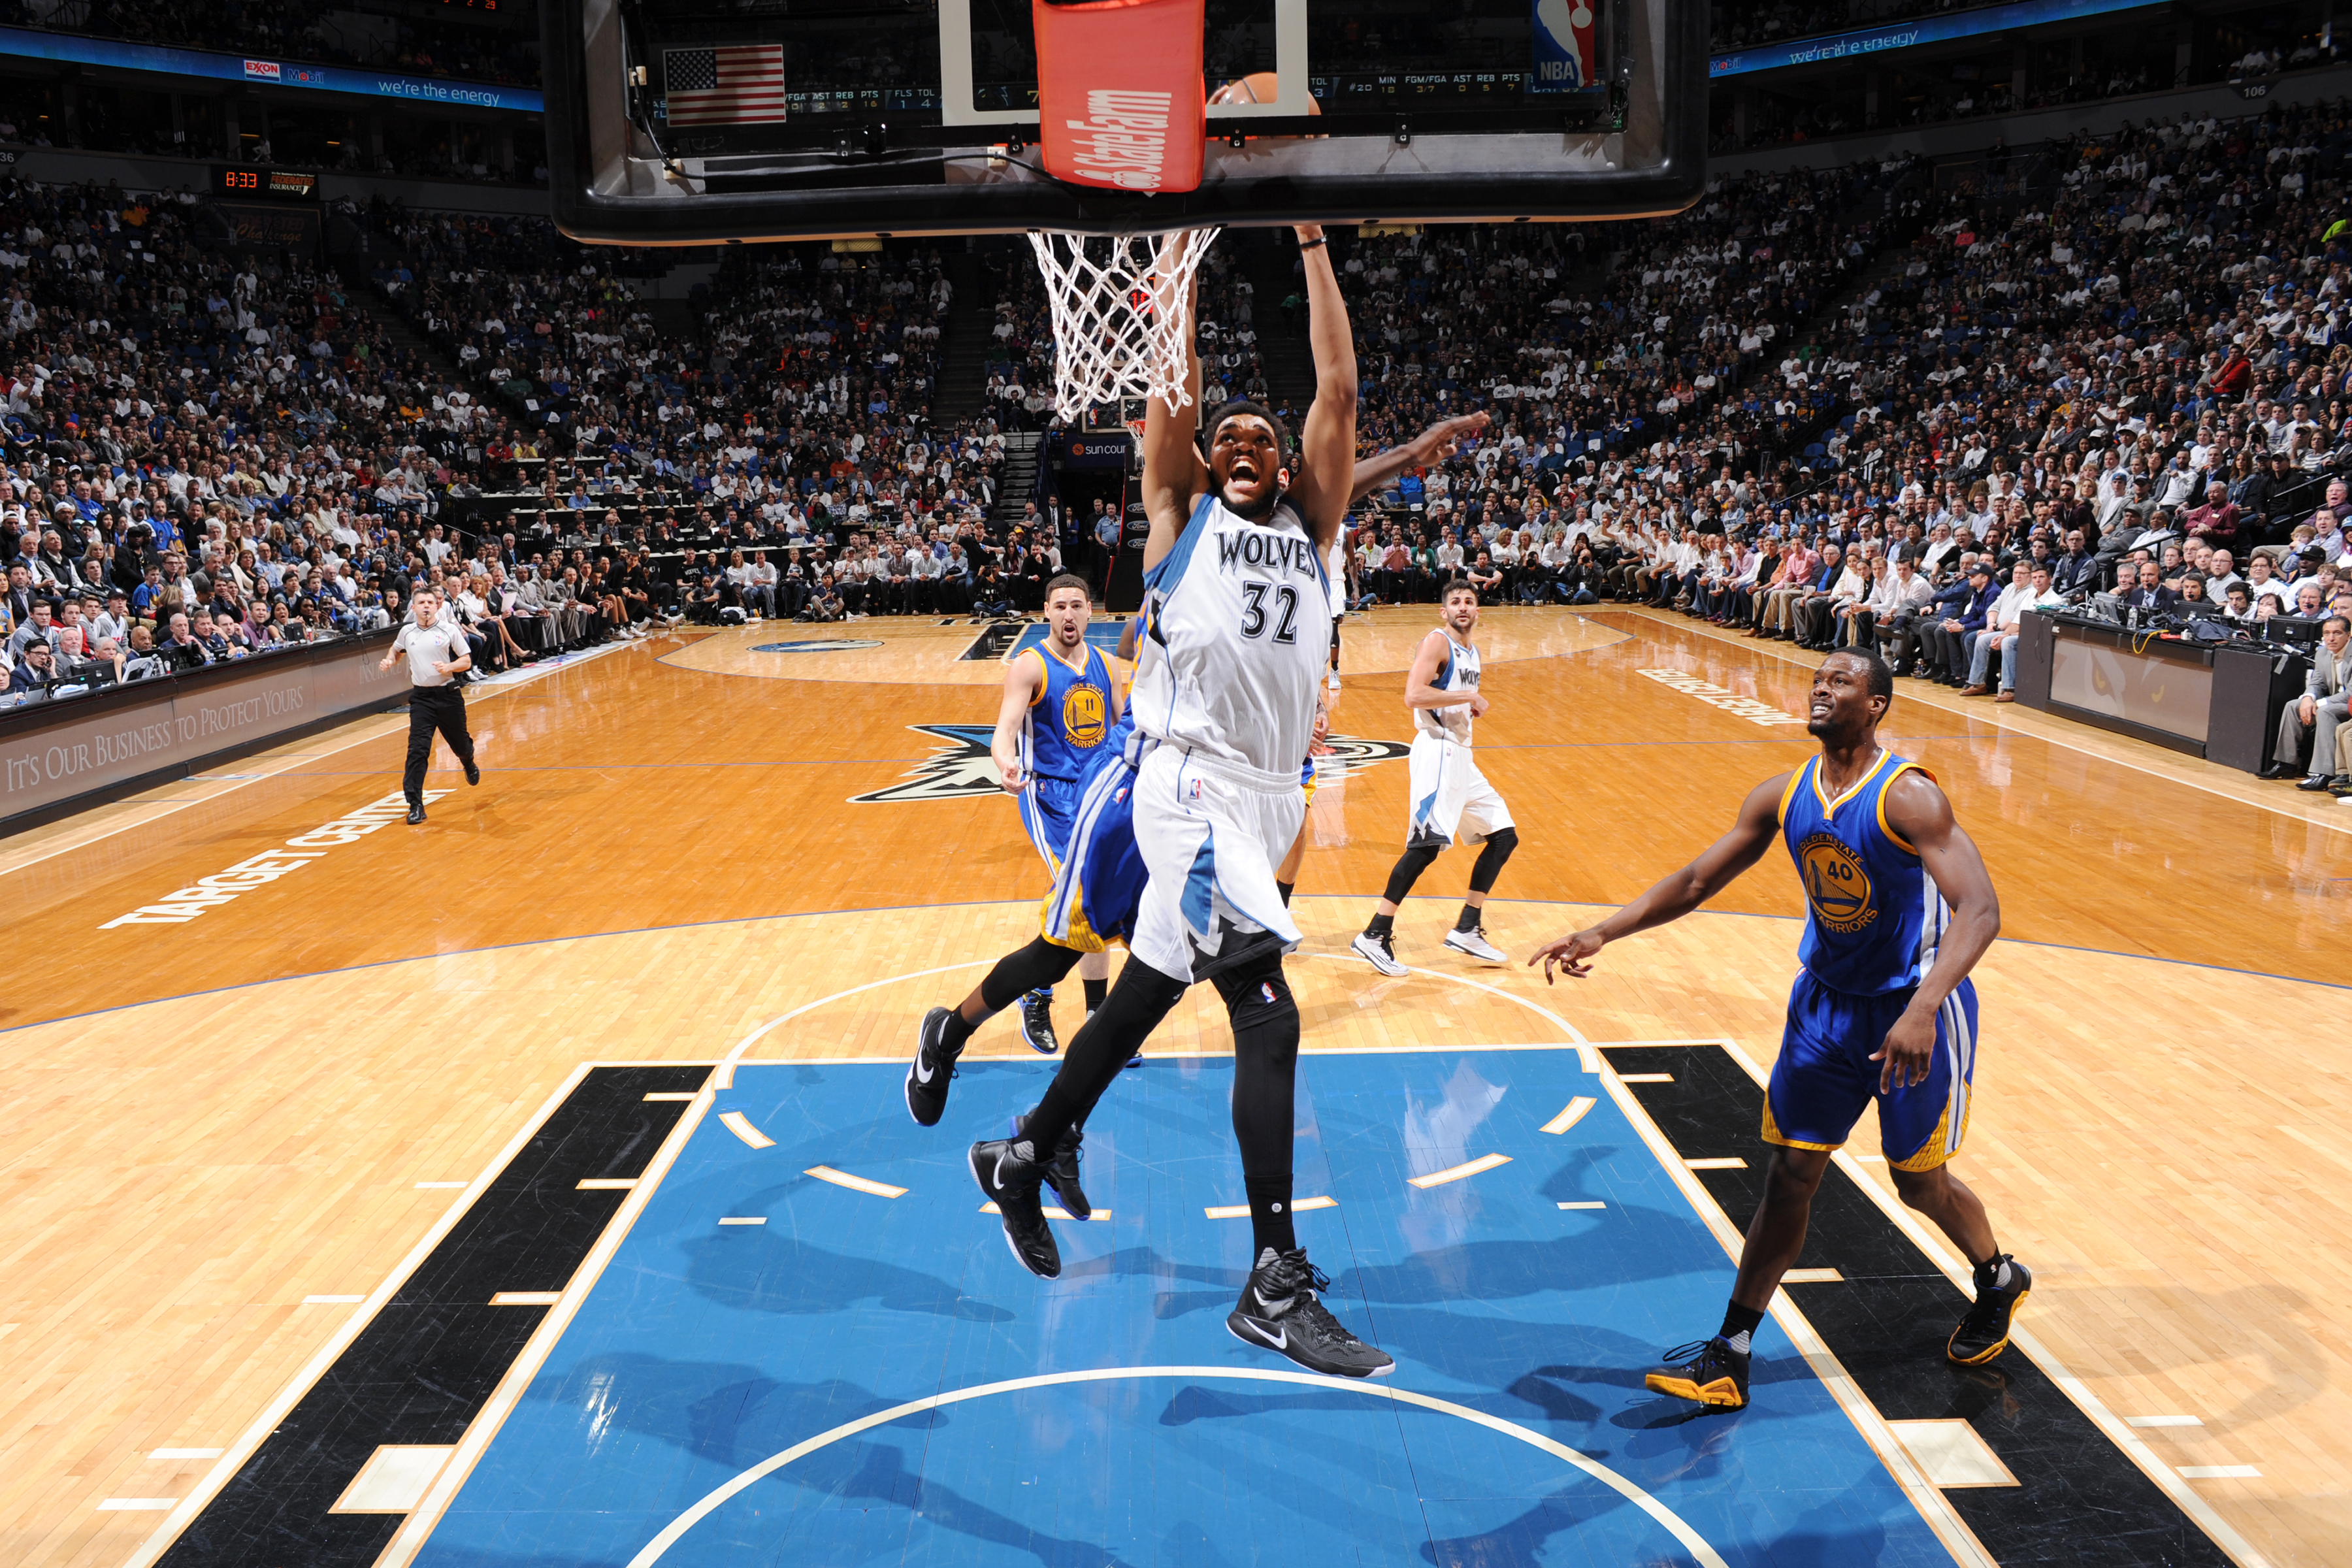 MINNEAPOLIS, MN -  MARCH 21:  Karl-Anthony Towns #32 of the Minnesota Timberwolves goes up for a dunk against the Golden State Warriors on March 21, 2016 at Target Center in Minneapolis, Minnesota. NOTE TO USER: User expressly acknowledges and agrees that, by downloading and or using this Photograph, user is consenting to the terms and conditions of the Getty Images License Agreement. Mandatory Copyright Notice: Copyright 2016 NBAE (Photo by Garrett Ellwood/NBAE via Getty Images)